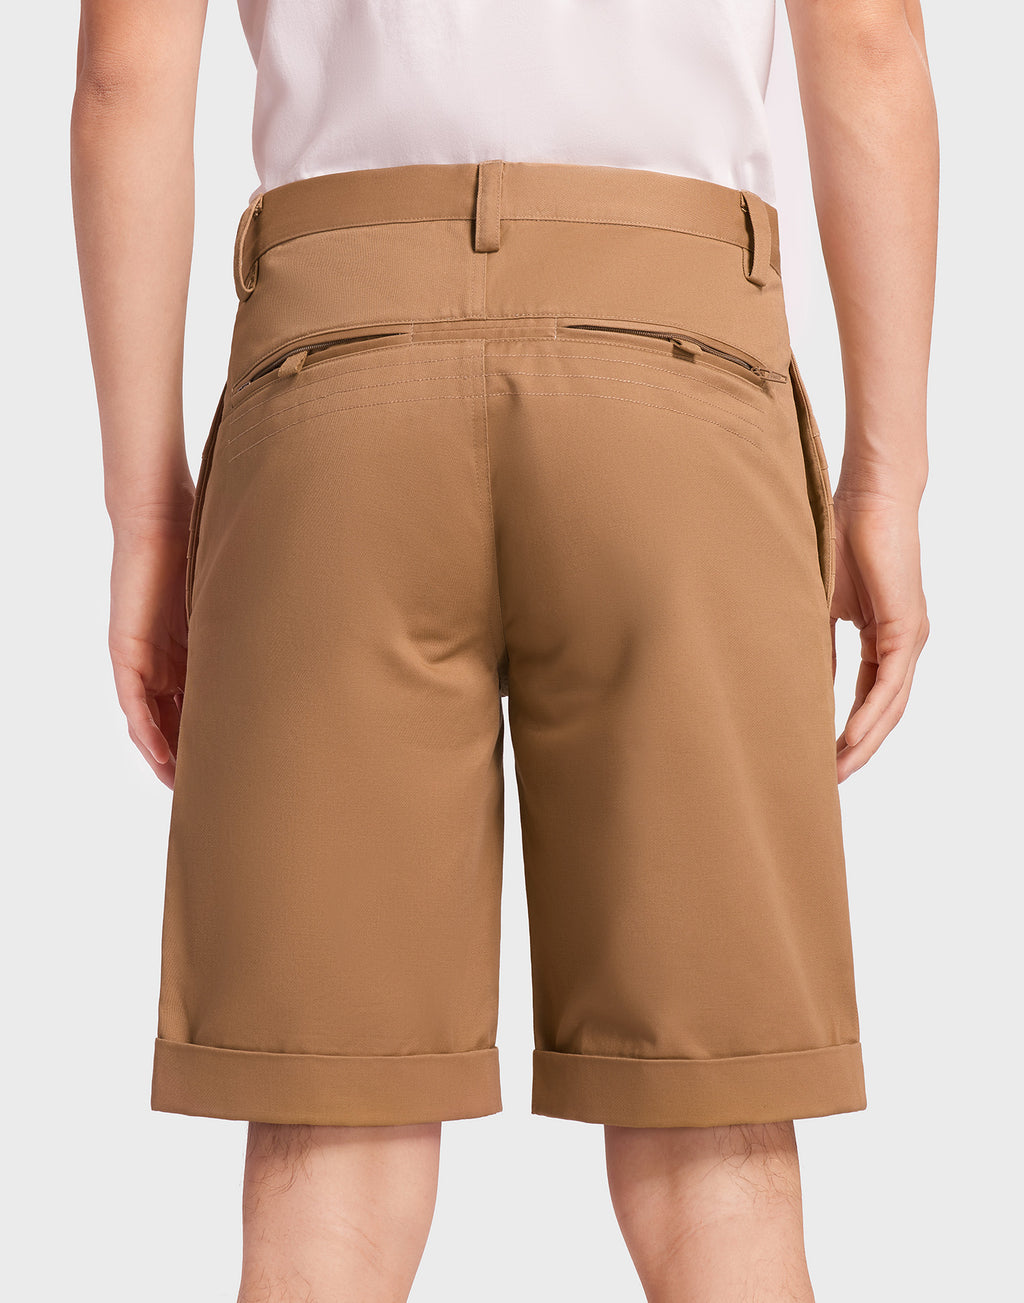 Dark Khaki Shorts